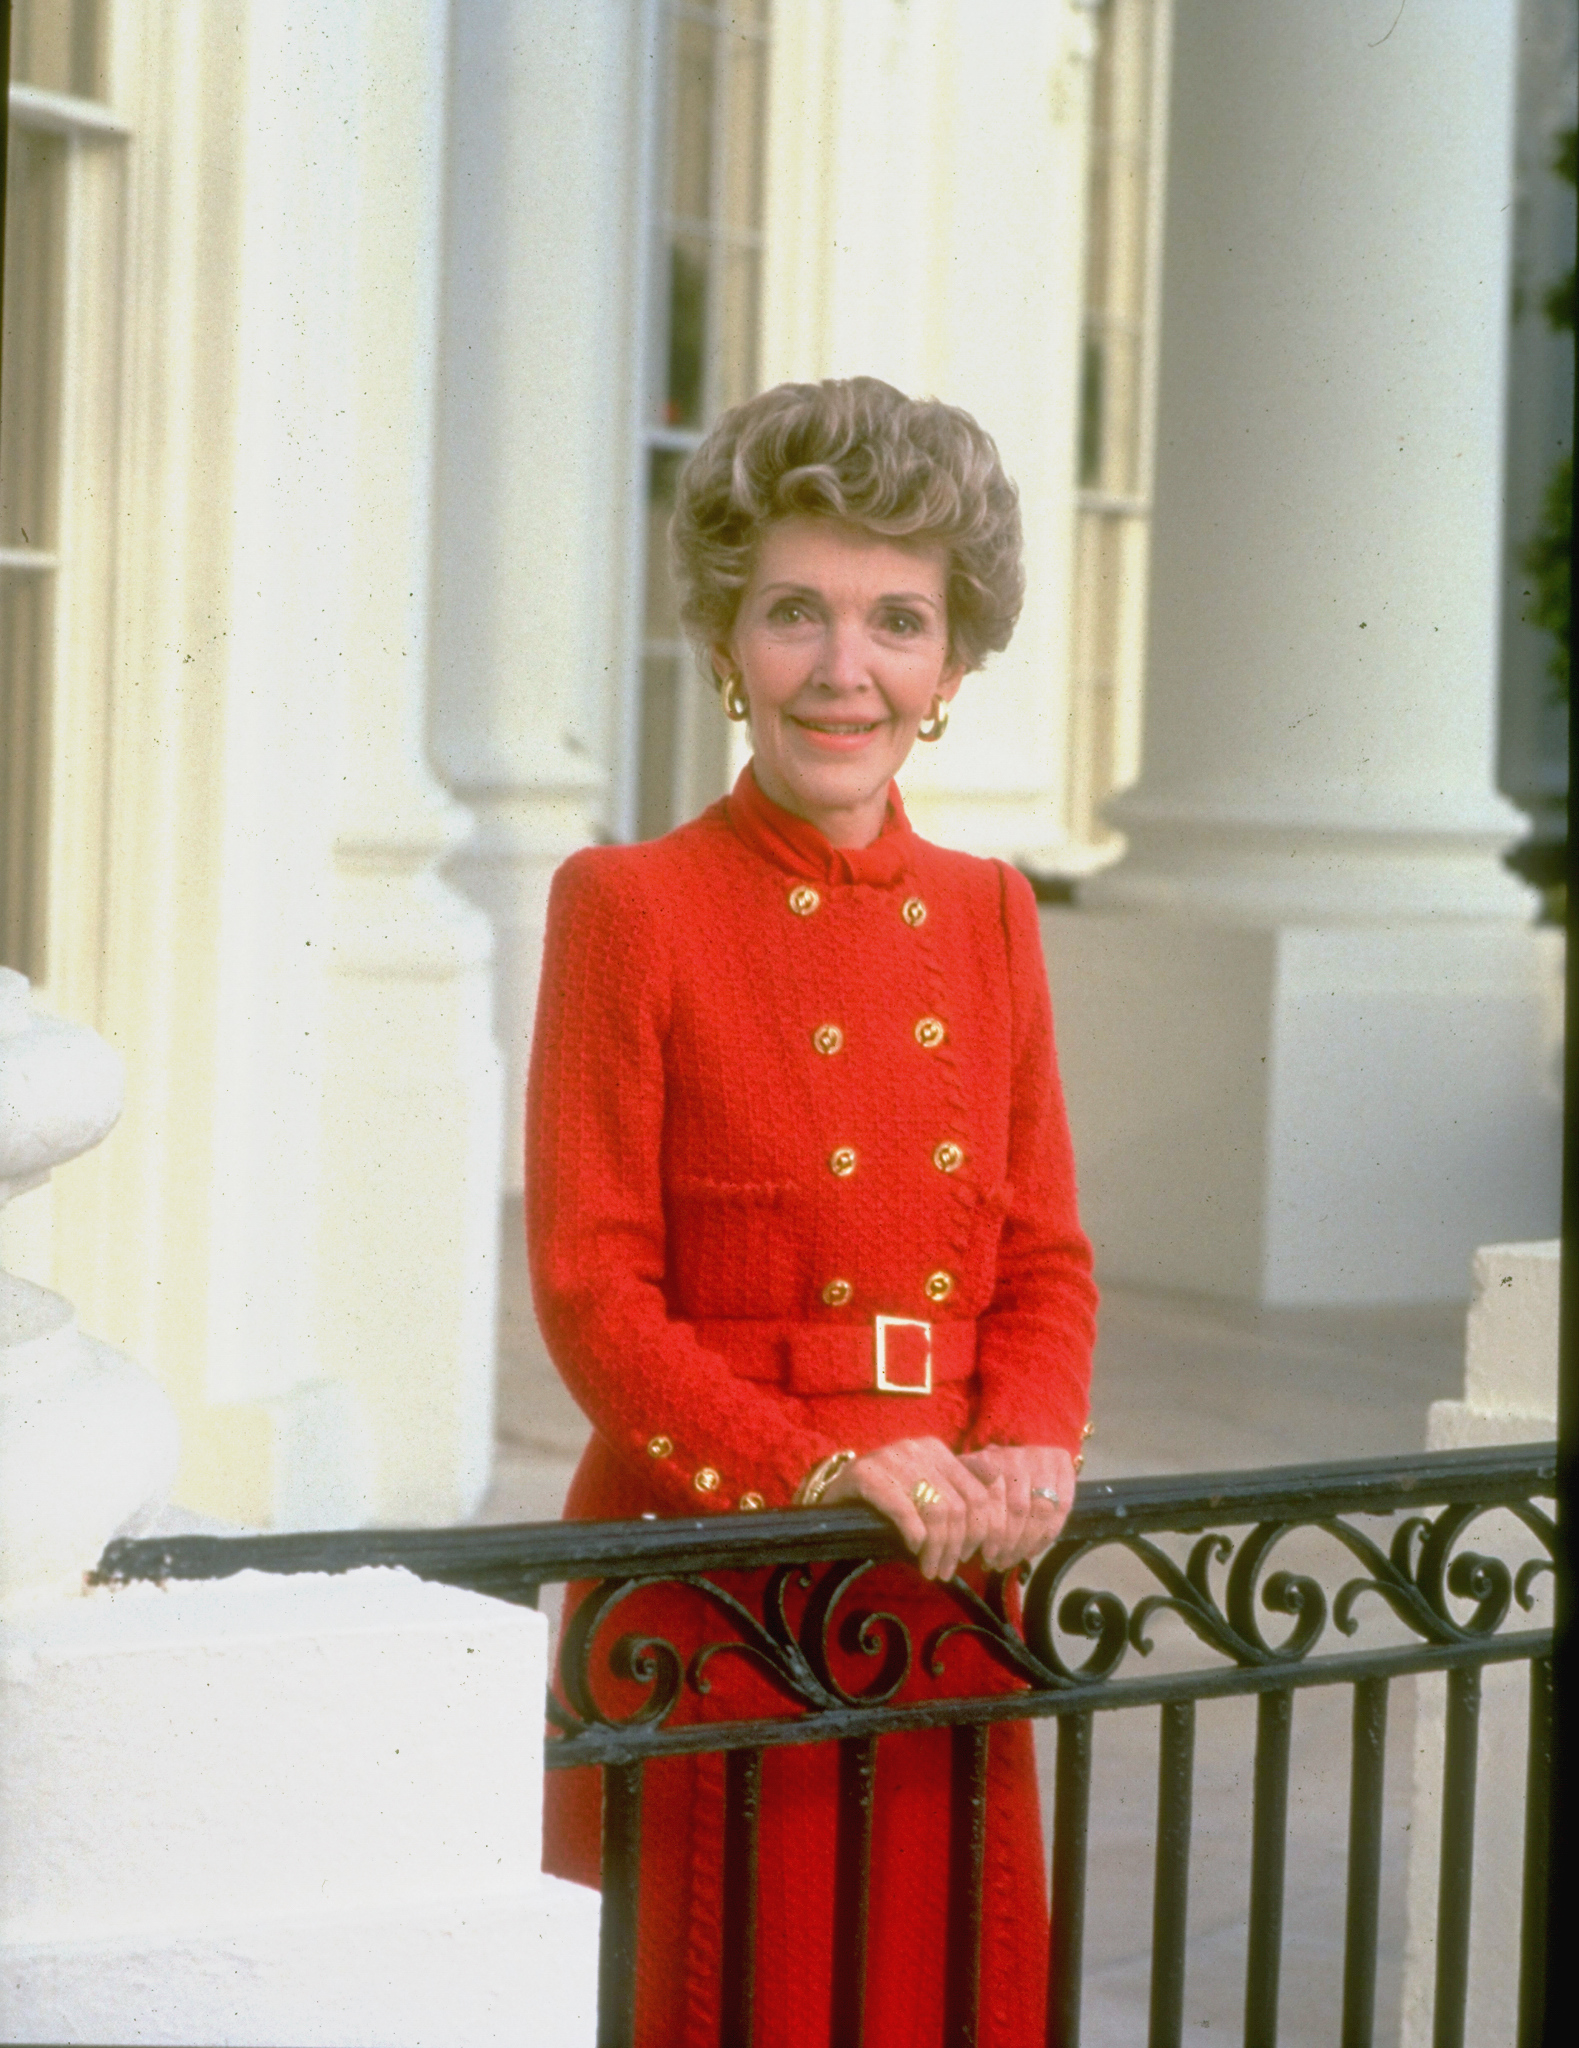 Portrait of a First Lady                                                              When she arrived in Washington in 1981 as the wife of U.S. President Ronald Reagan, Nancy Reagan restored a glamour to the White House that had been absent for several administrations. Her unwavering commitment to her husband and his policies, though controversial at times, inspired Americans on both sides of the political spectrum.